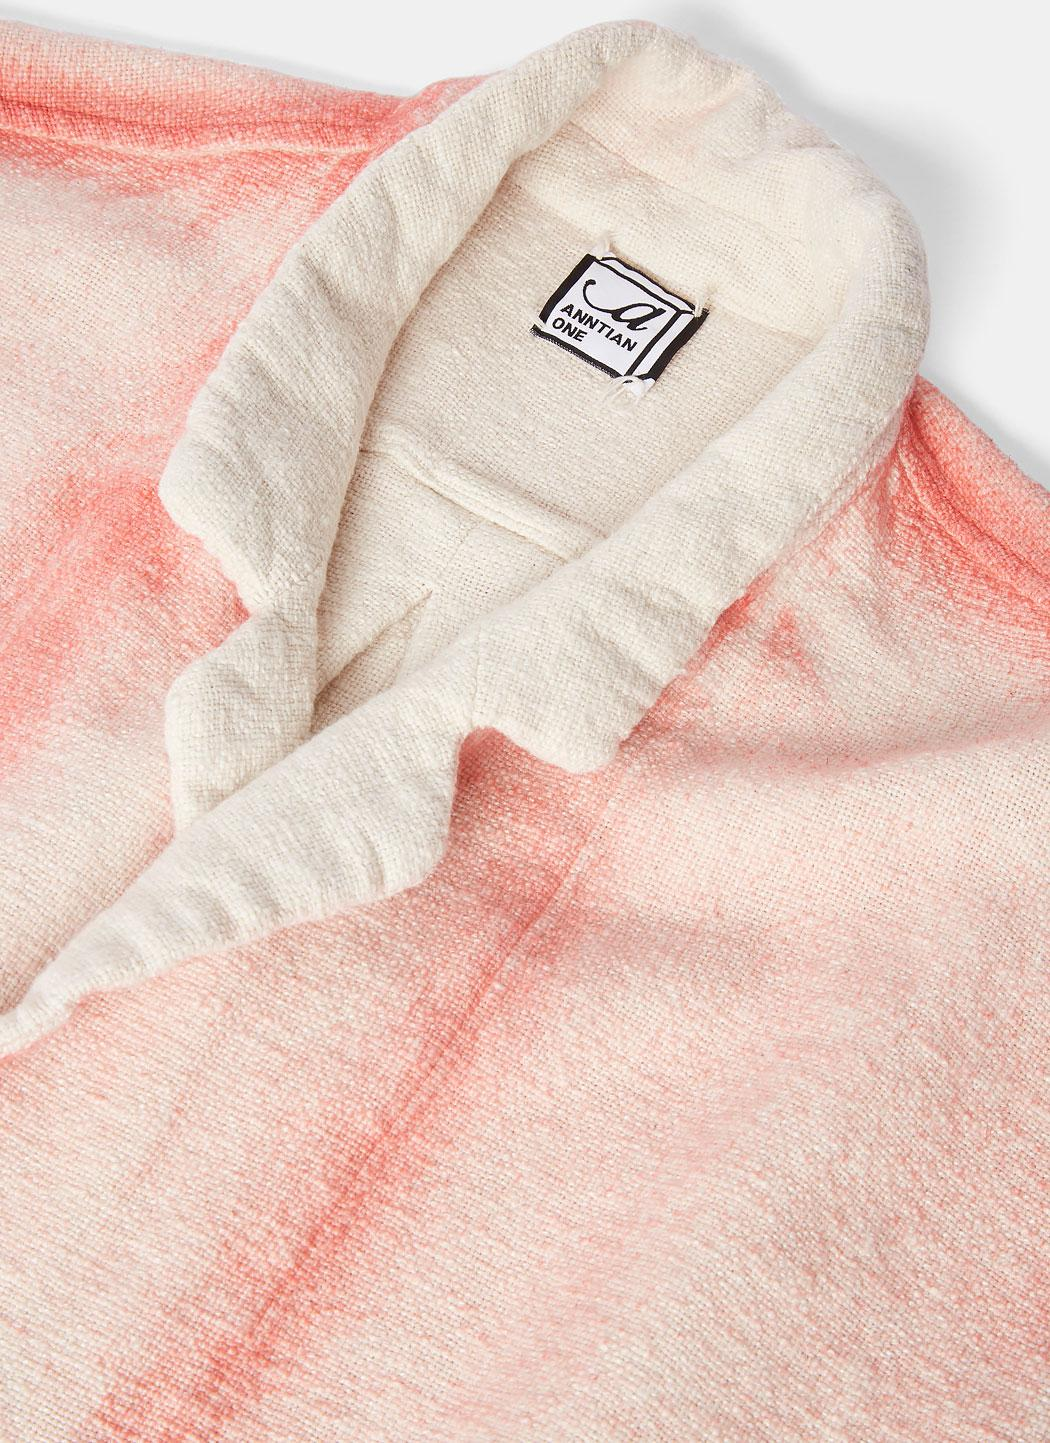 Anntian Cotton Men's Sakko Dyed Buttoned Jacket In Natural And Pink for Men